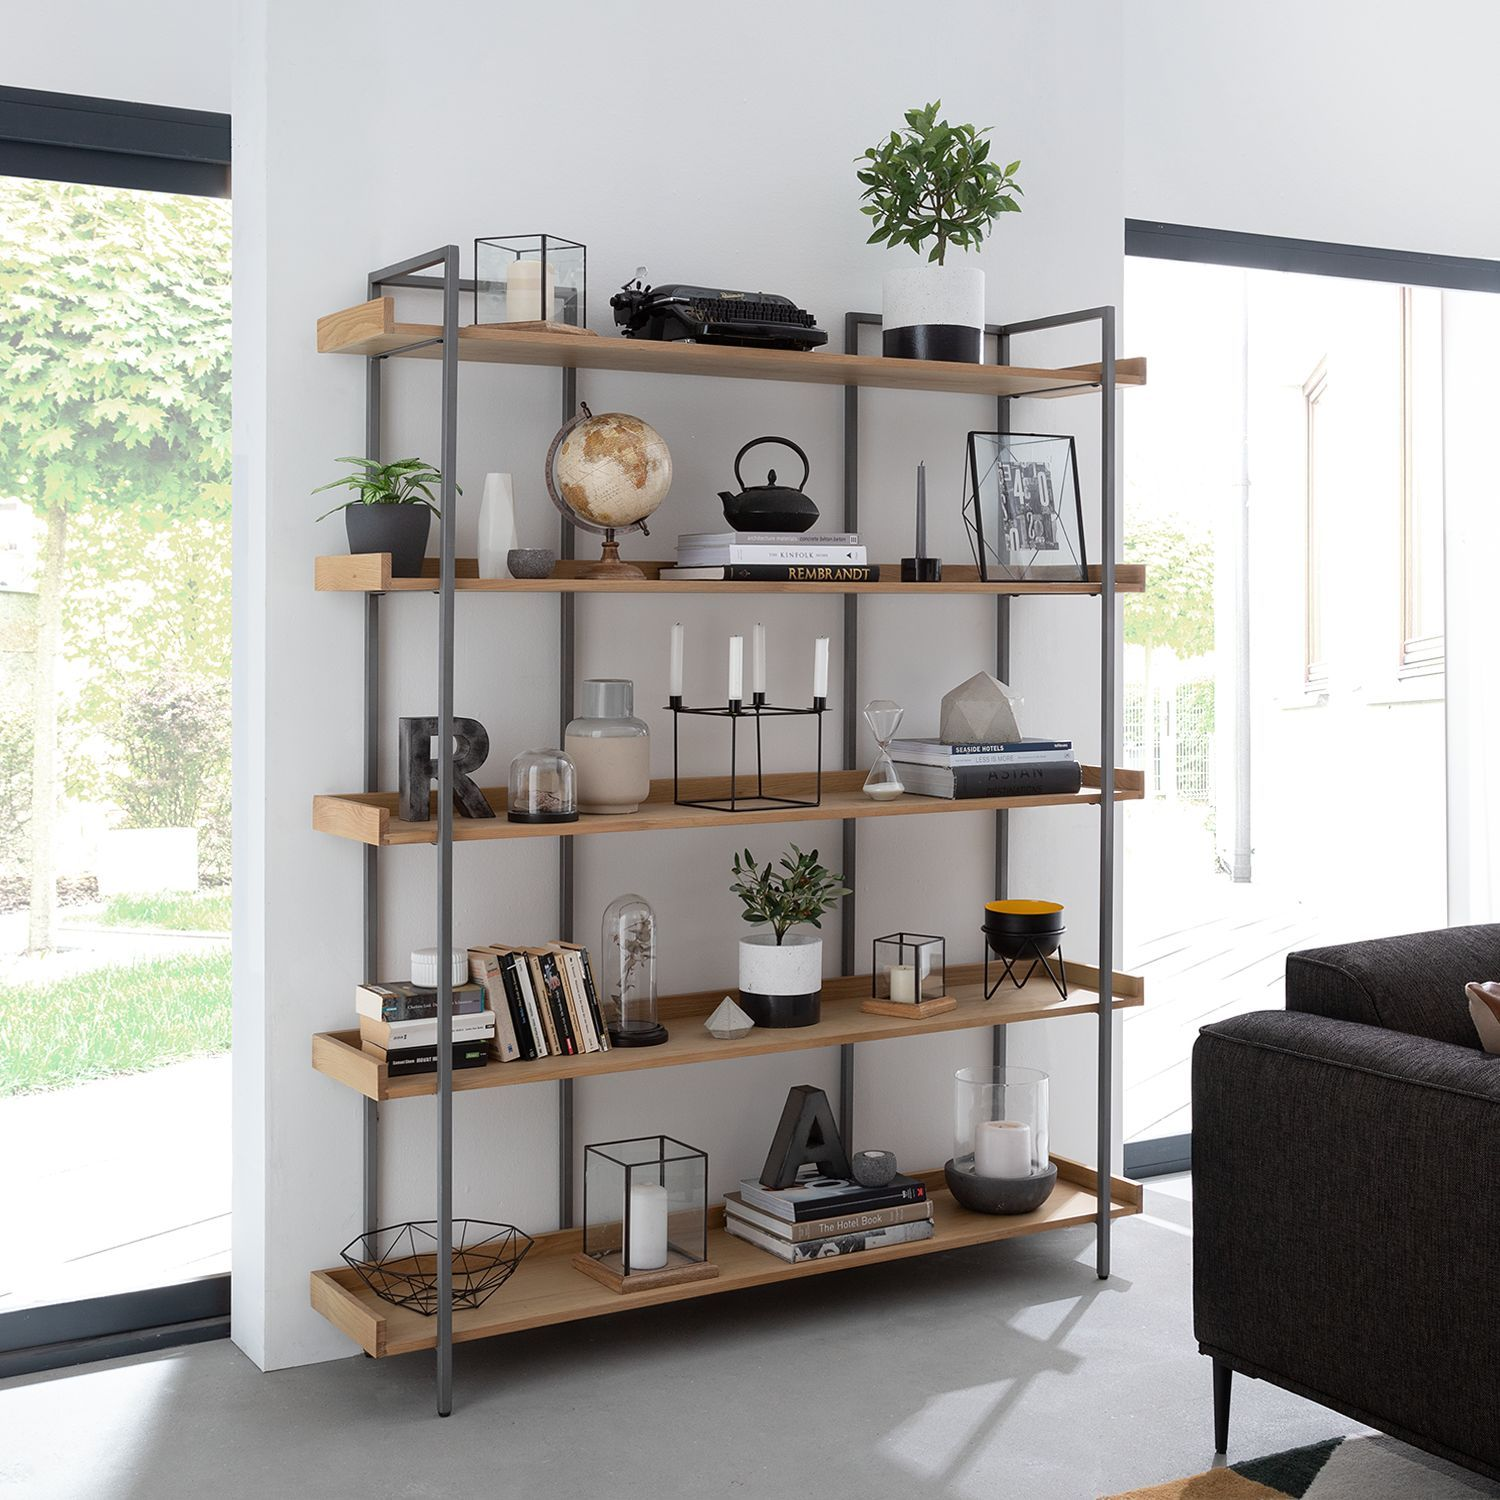 Bücherregal Dharai kaufen  home6 in 6  Innenarchitektur